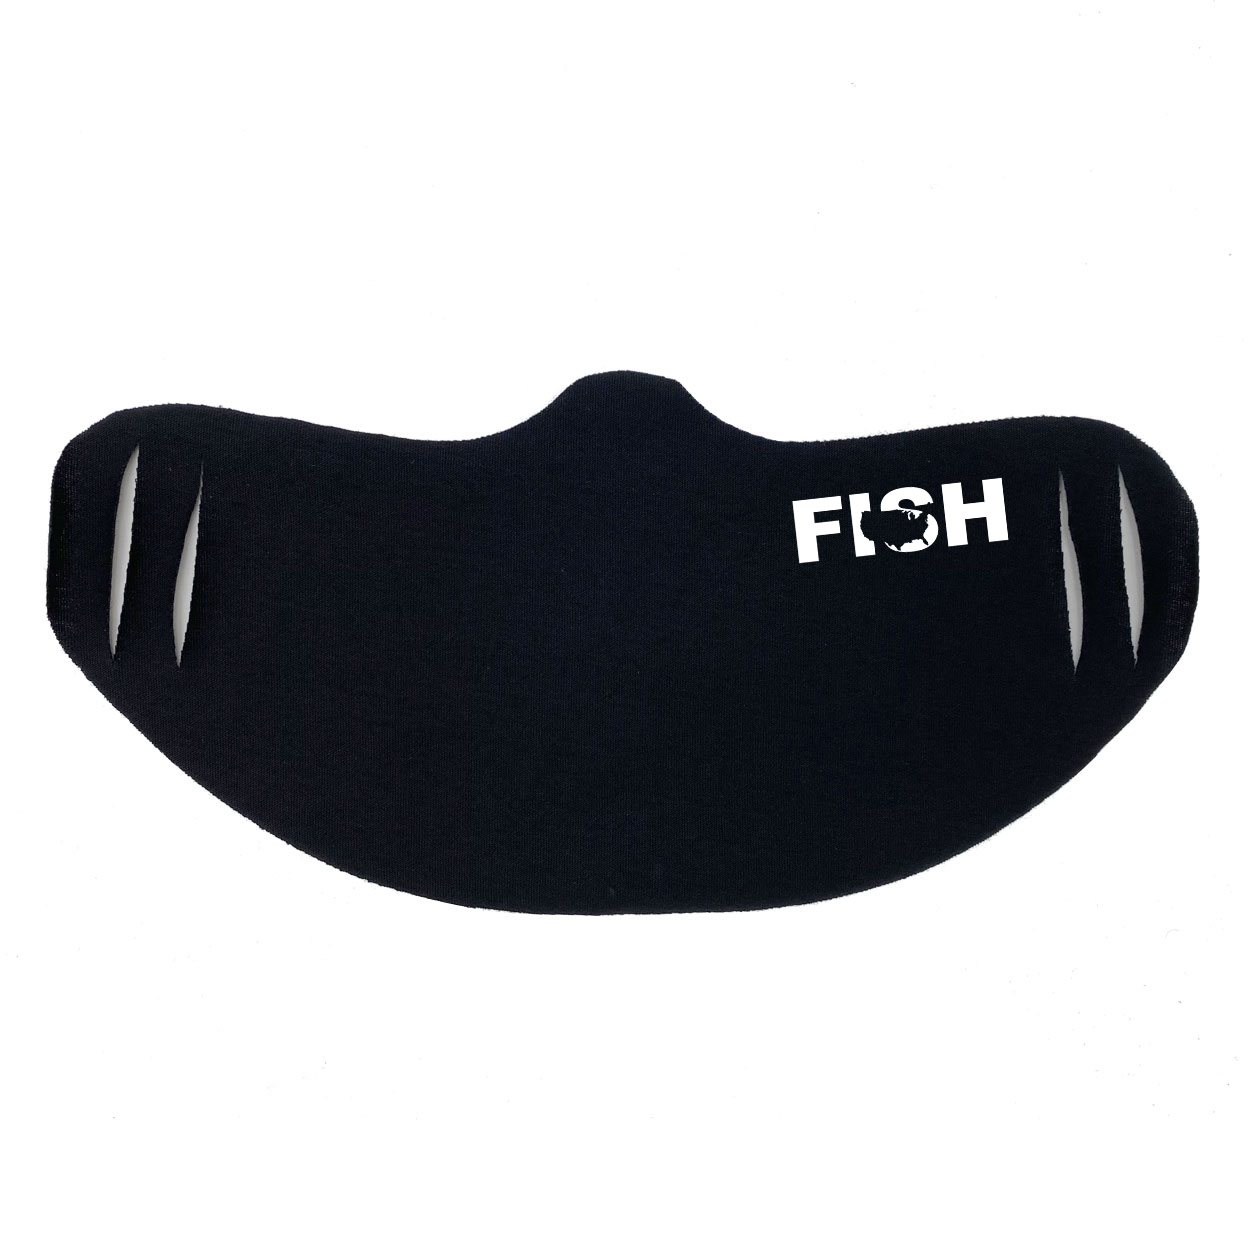 Fish United States Ultra Lightweight Face Mask Cover Black (White Logo)